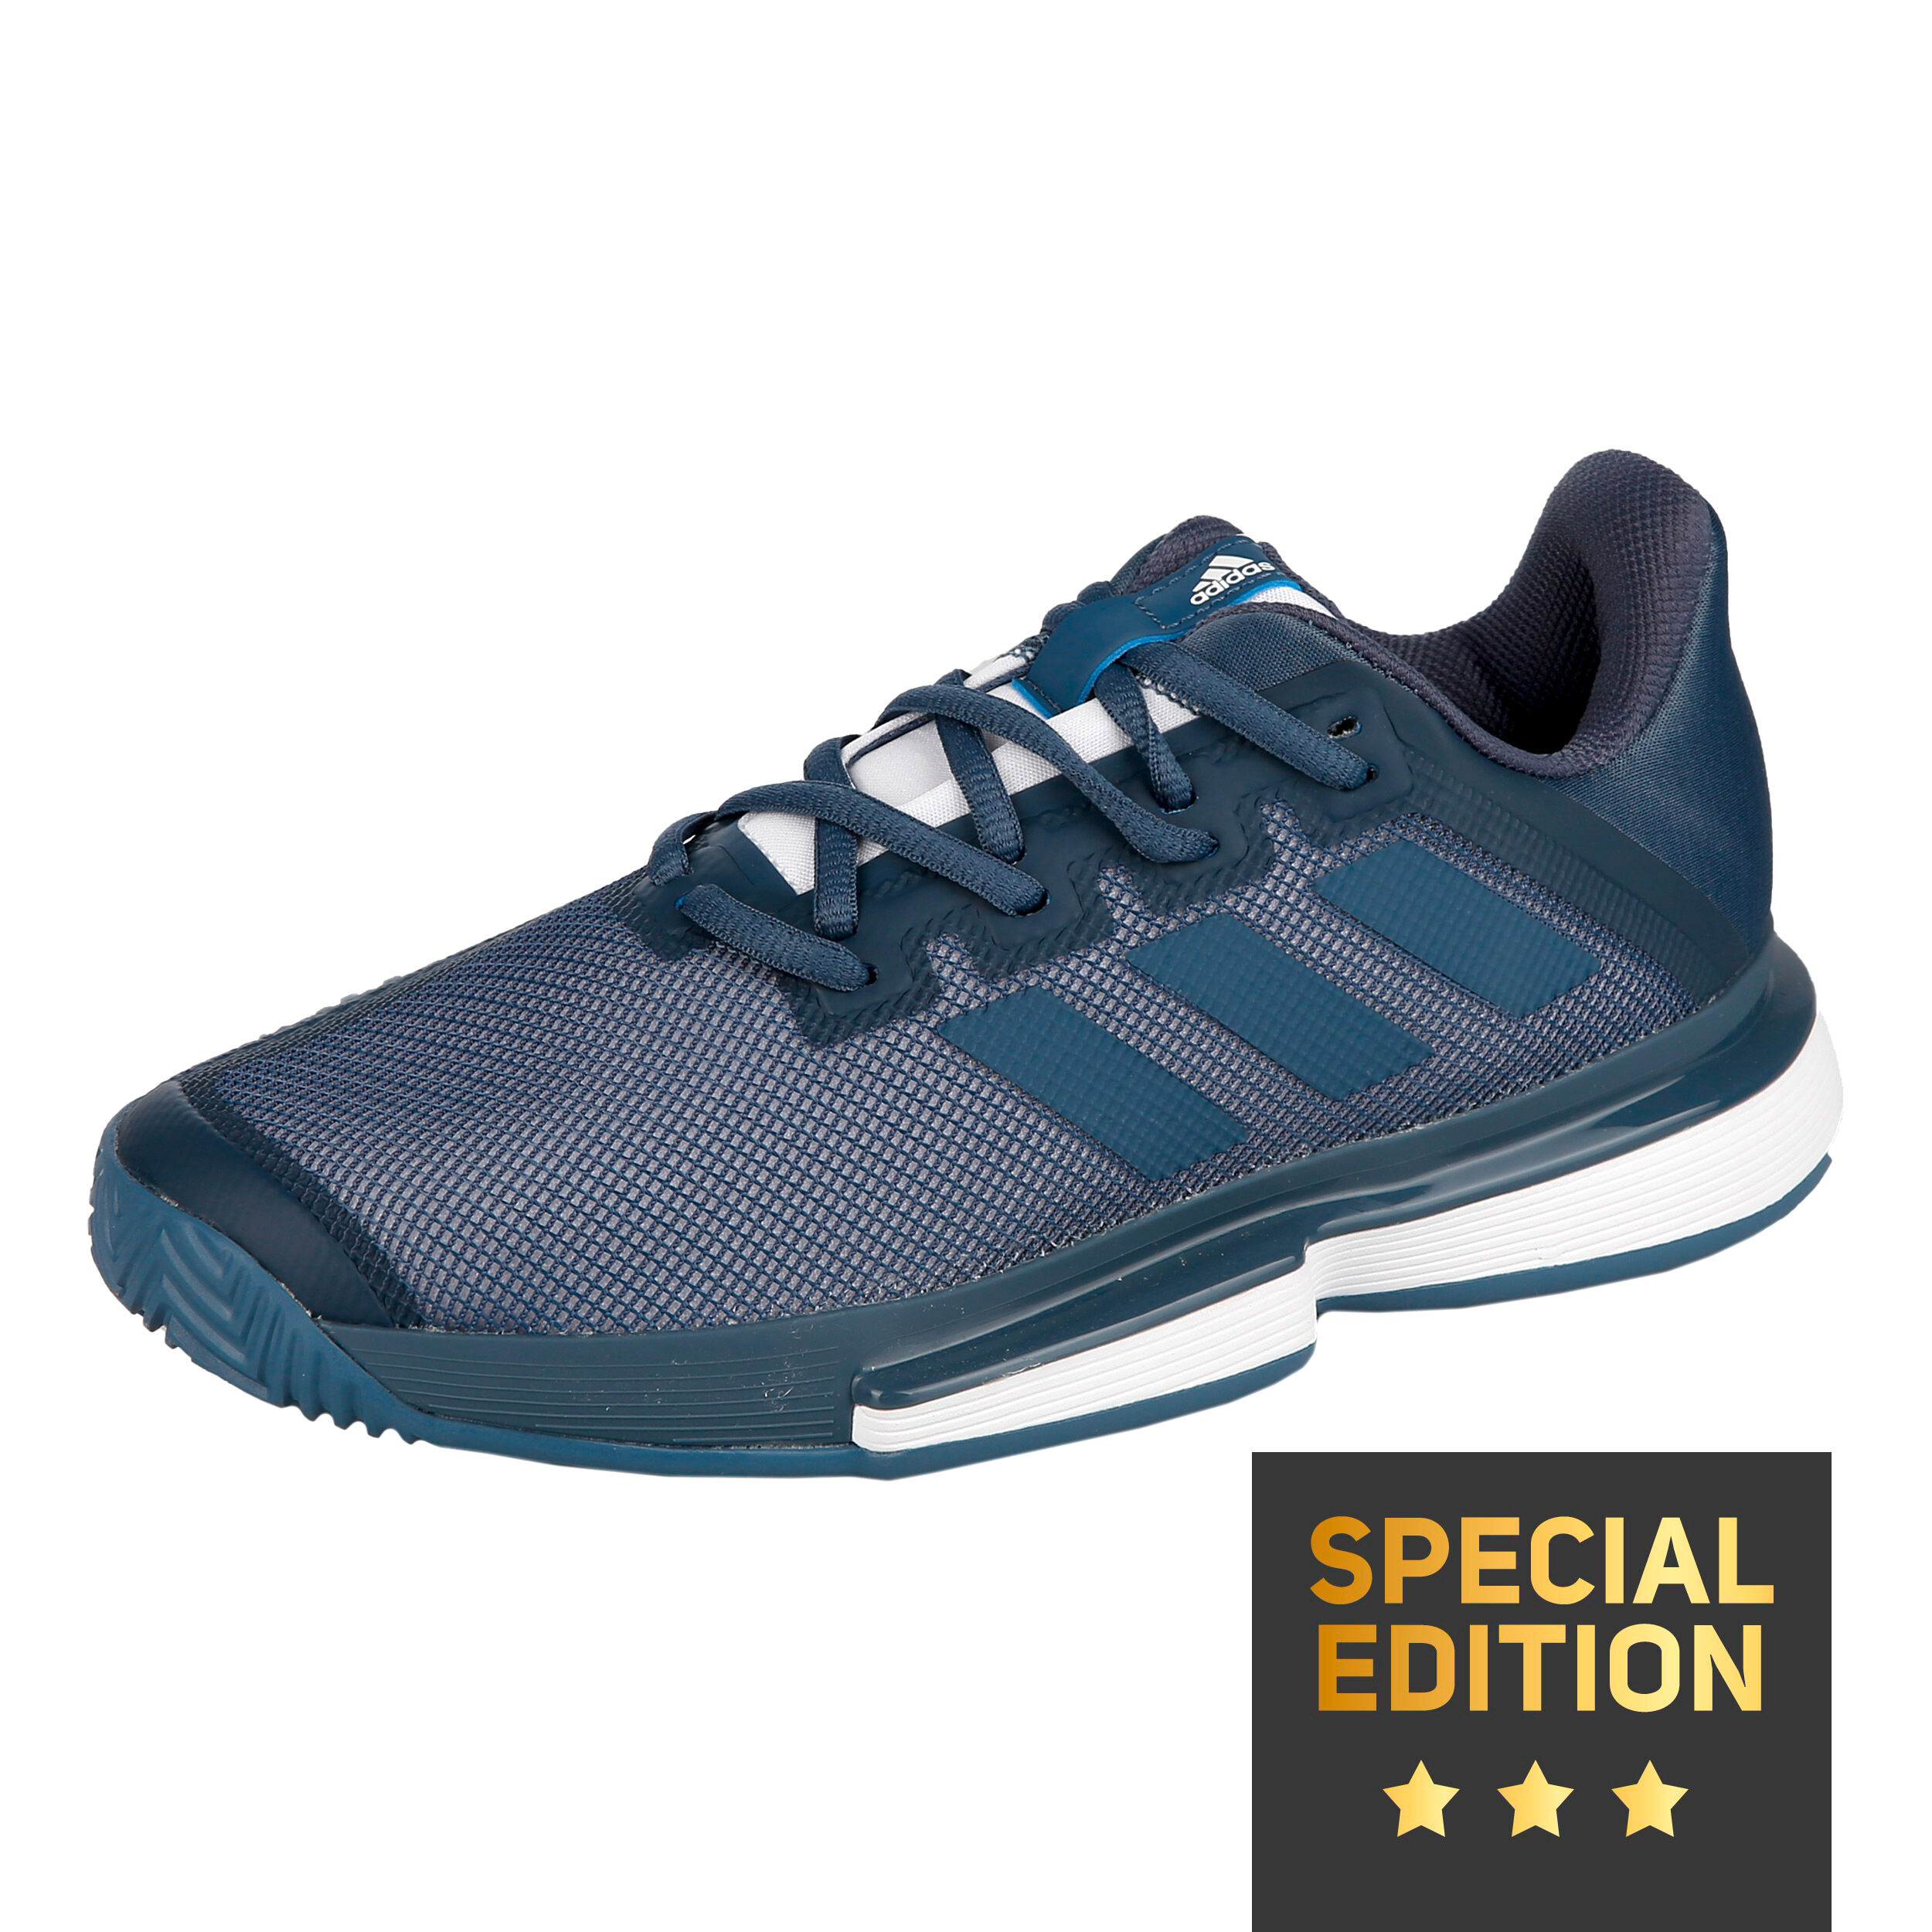 Bounce Sole Hommes Chaussure Battue Match Clay Edition Terre Spéciale 0mwN8nOv